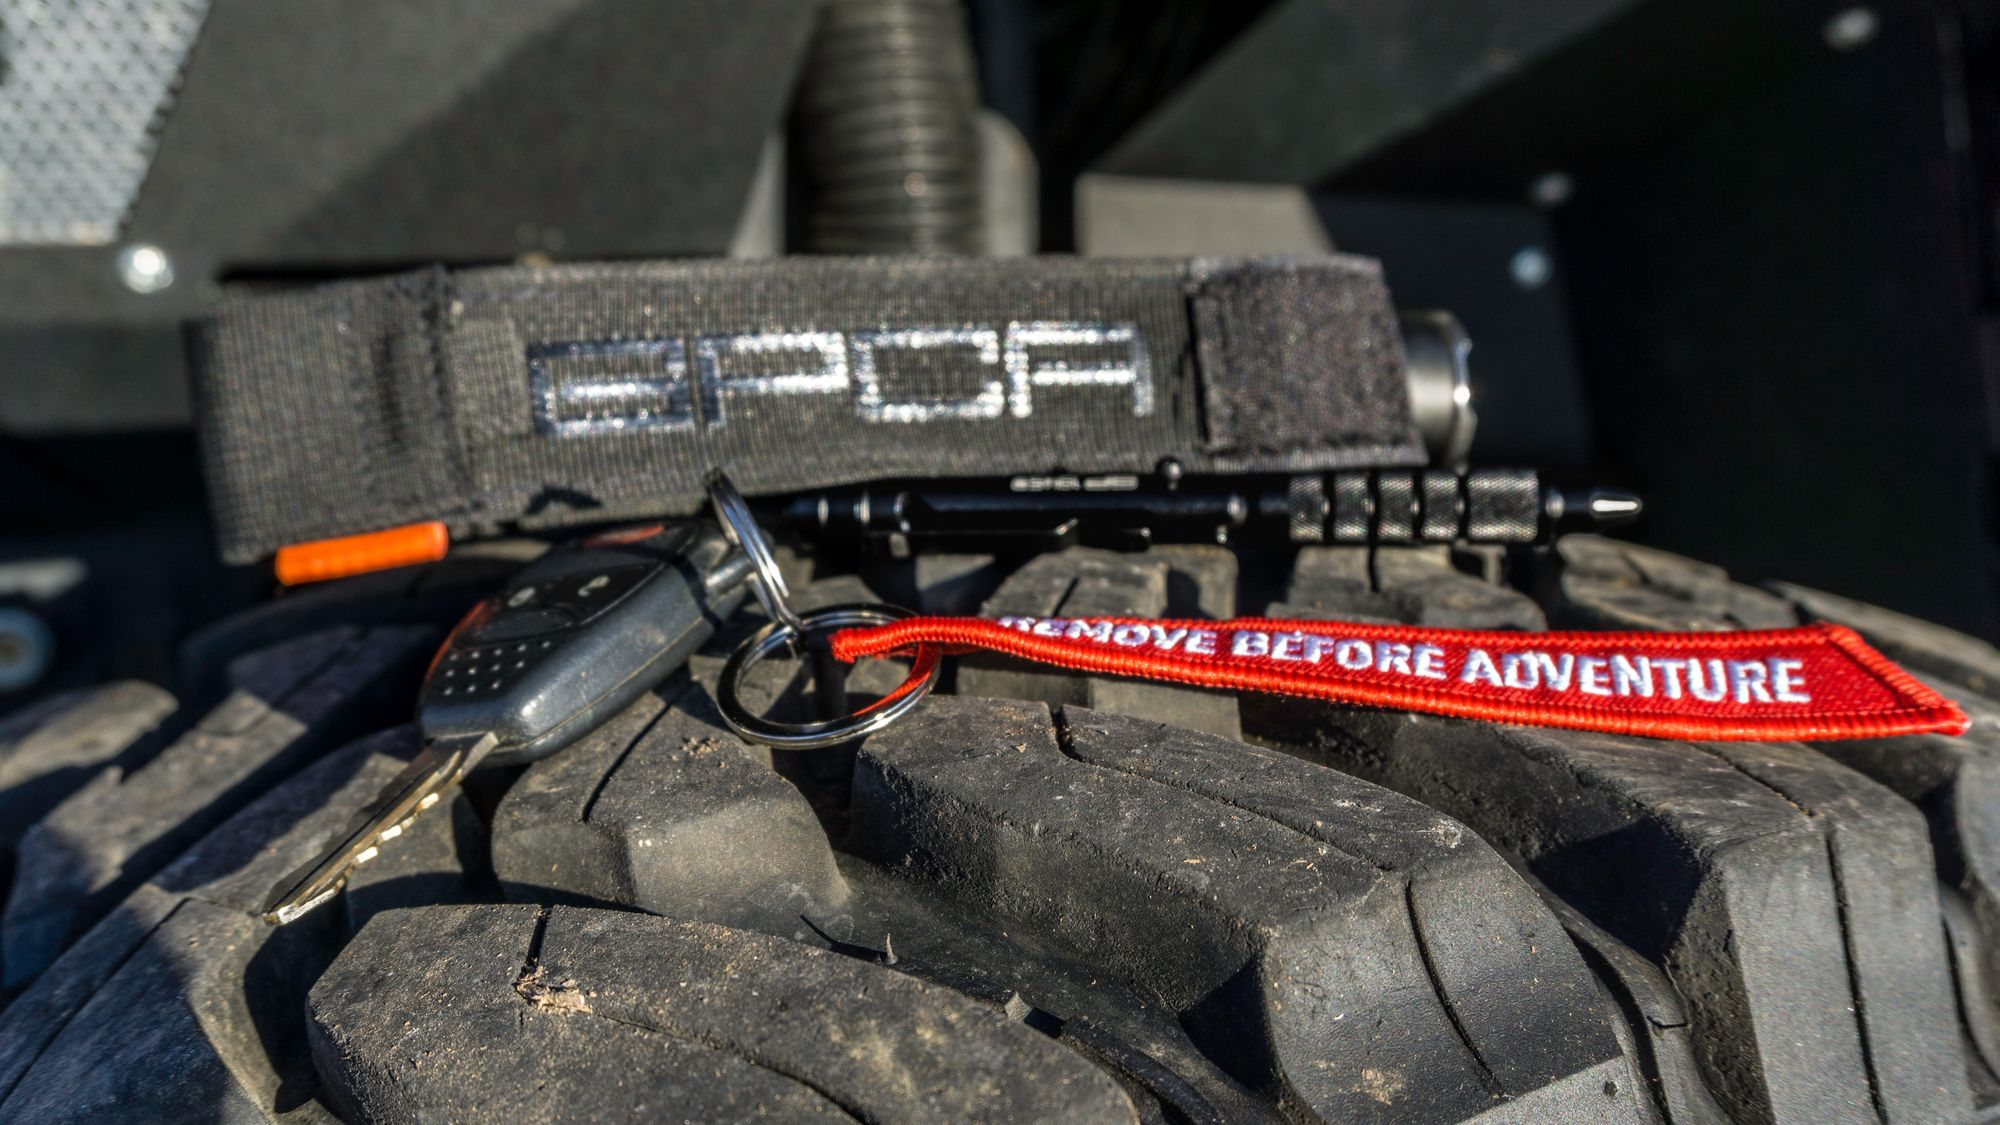 Remove Before Adventure Red Key Tag Jeep Gear Jeep Owners Jeep Wrangler Jk